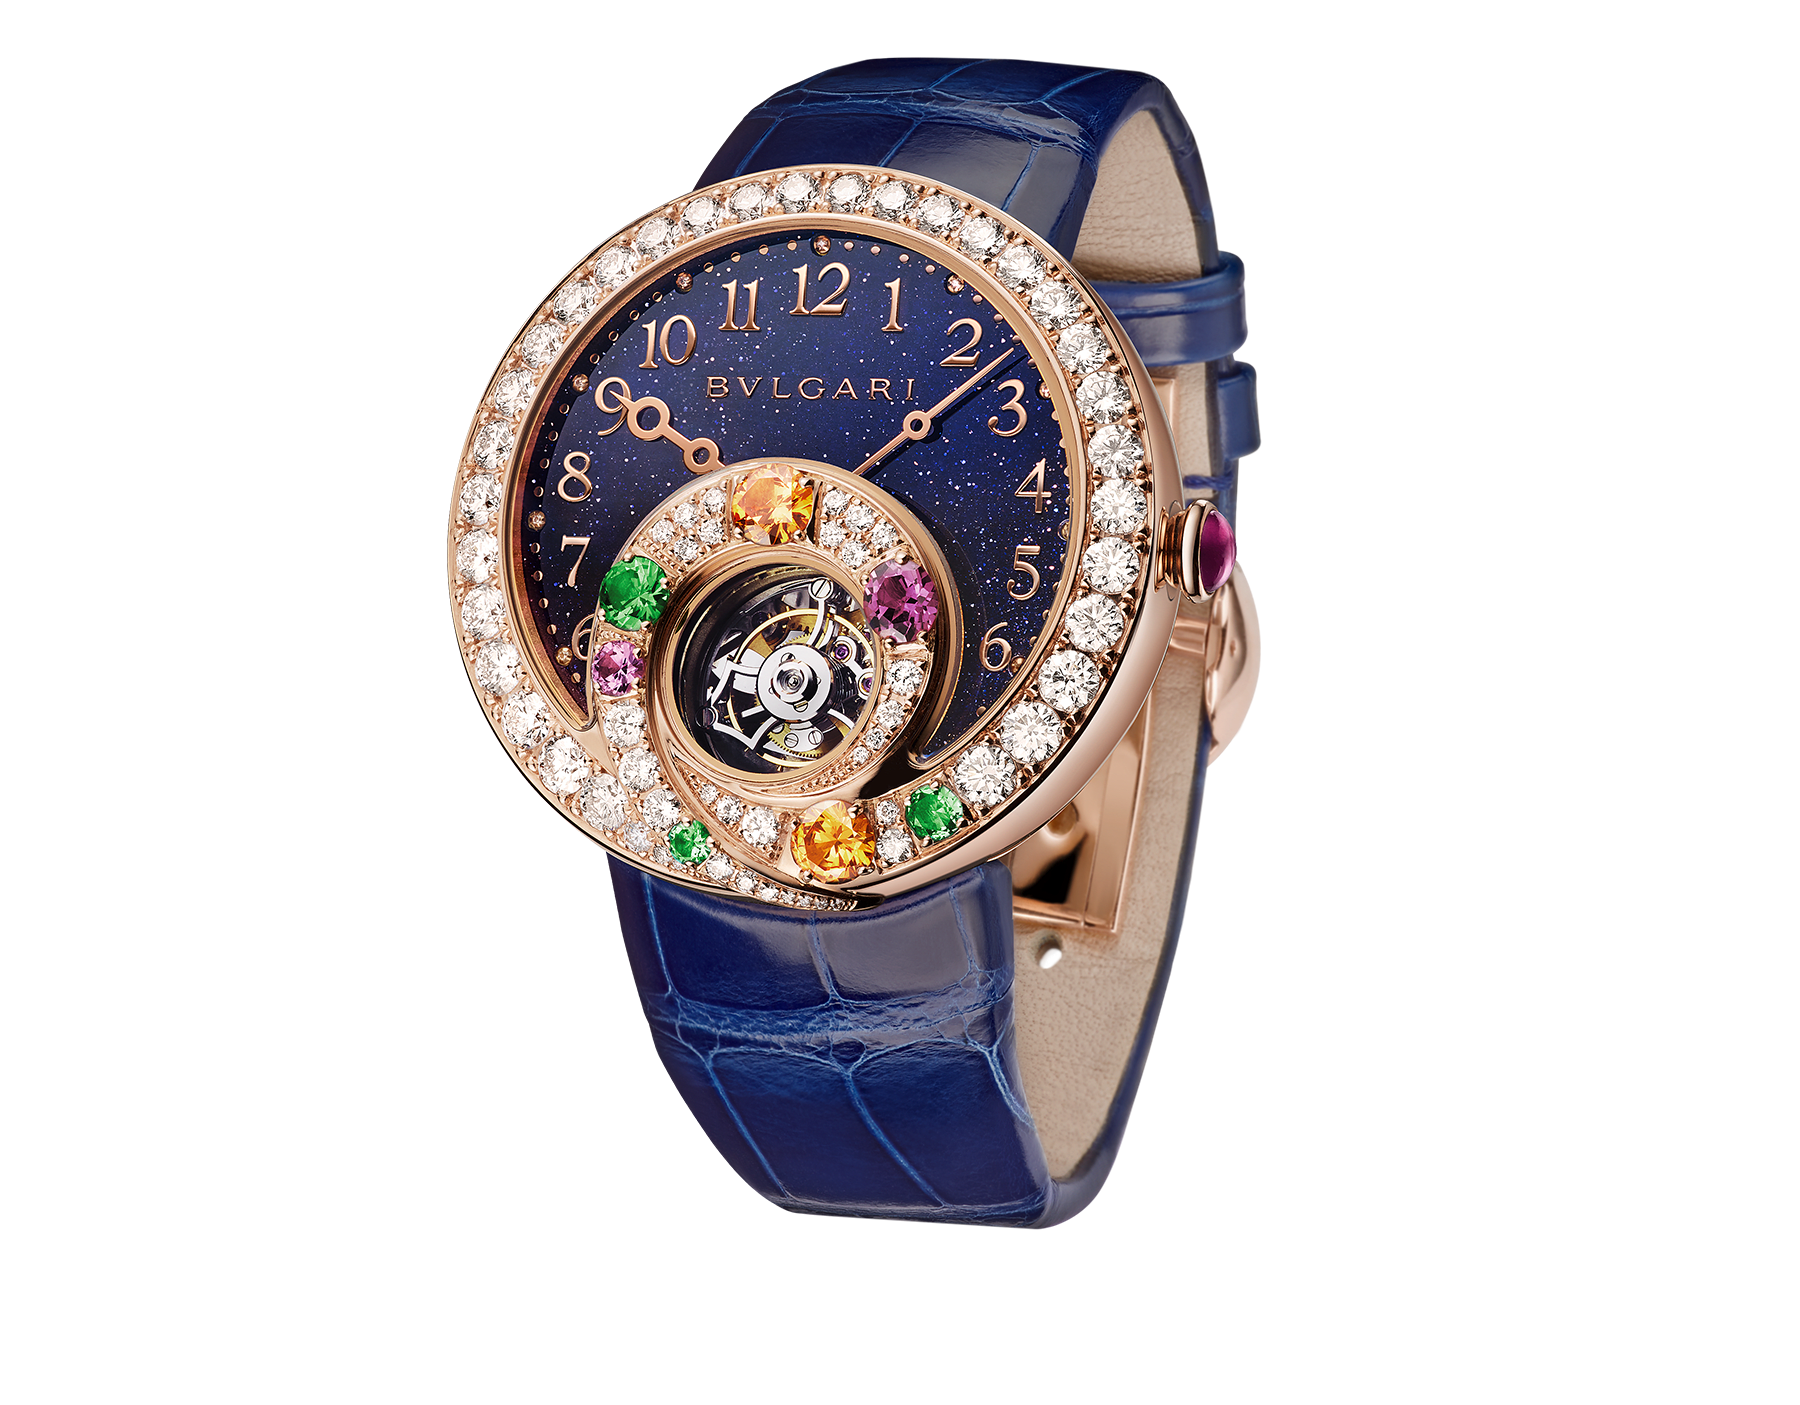 Berries Tourbillon watch with mechanical manufacture movement, automatic winding and see-through tourbillon. 18 kt rose gold case set with brilliant-cut diamonds, emeralds, mandarine garnets, tourmaline, sapphire and tsavorite, aventurine dial, diamond indexes and blue alligator bracelet 102556 image 1